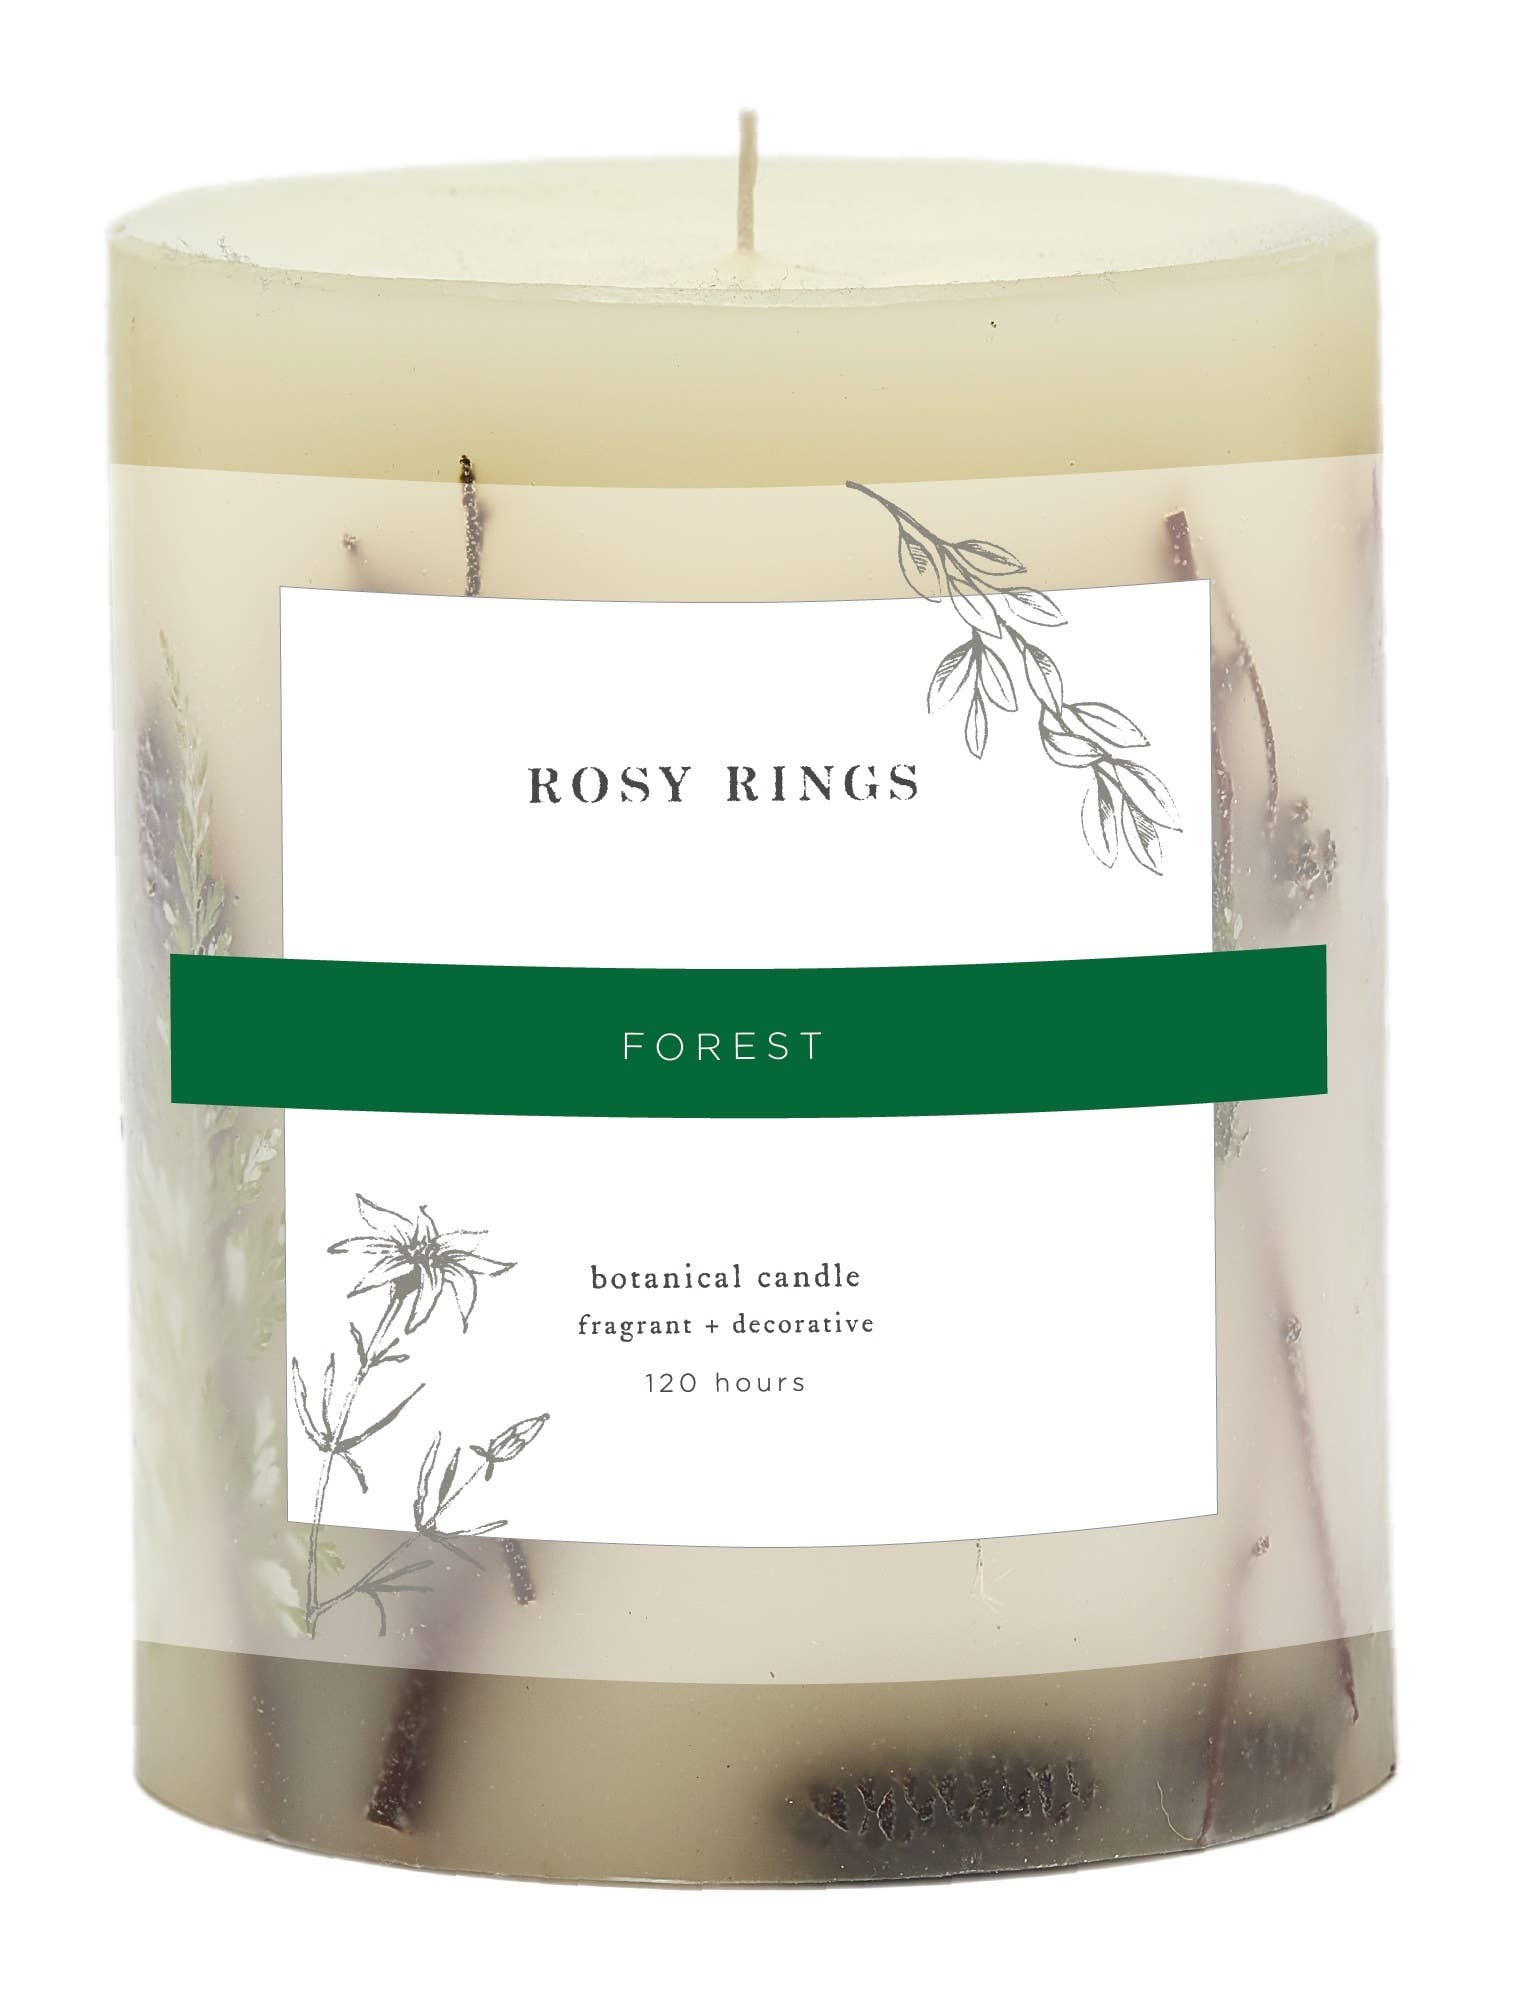 Rosy Rings Forest Round Botanical Candle